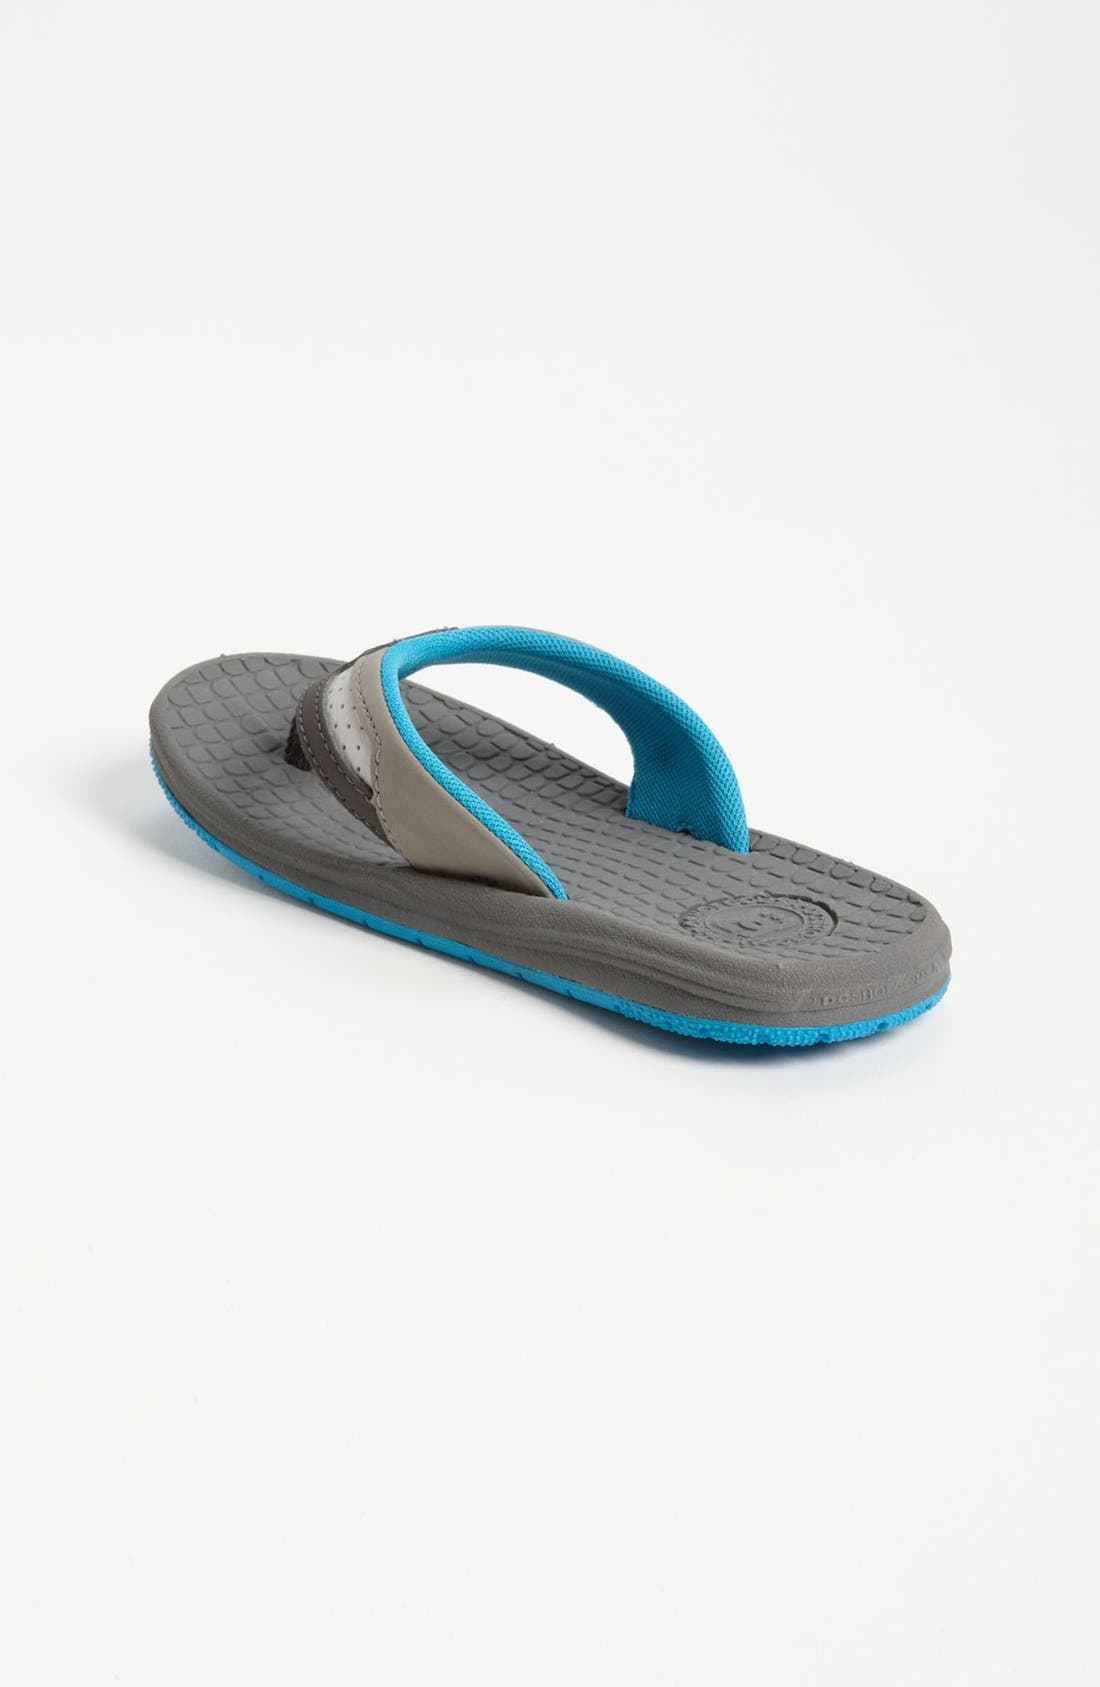 Alternate Image 2  - DC Shoes 'Cabo' Flip Flop (Toddler, Little Kid & Big Kid)